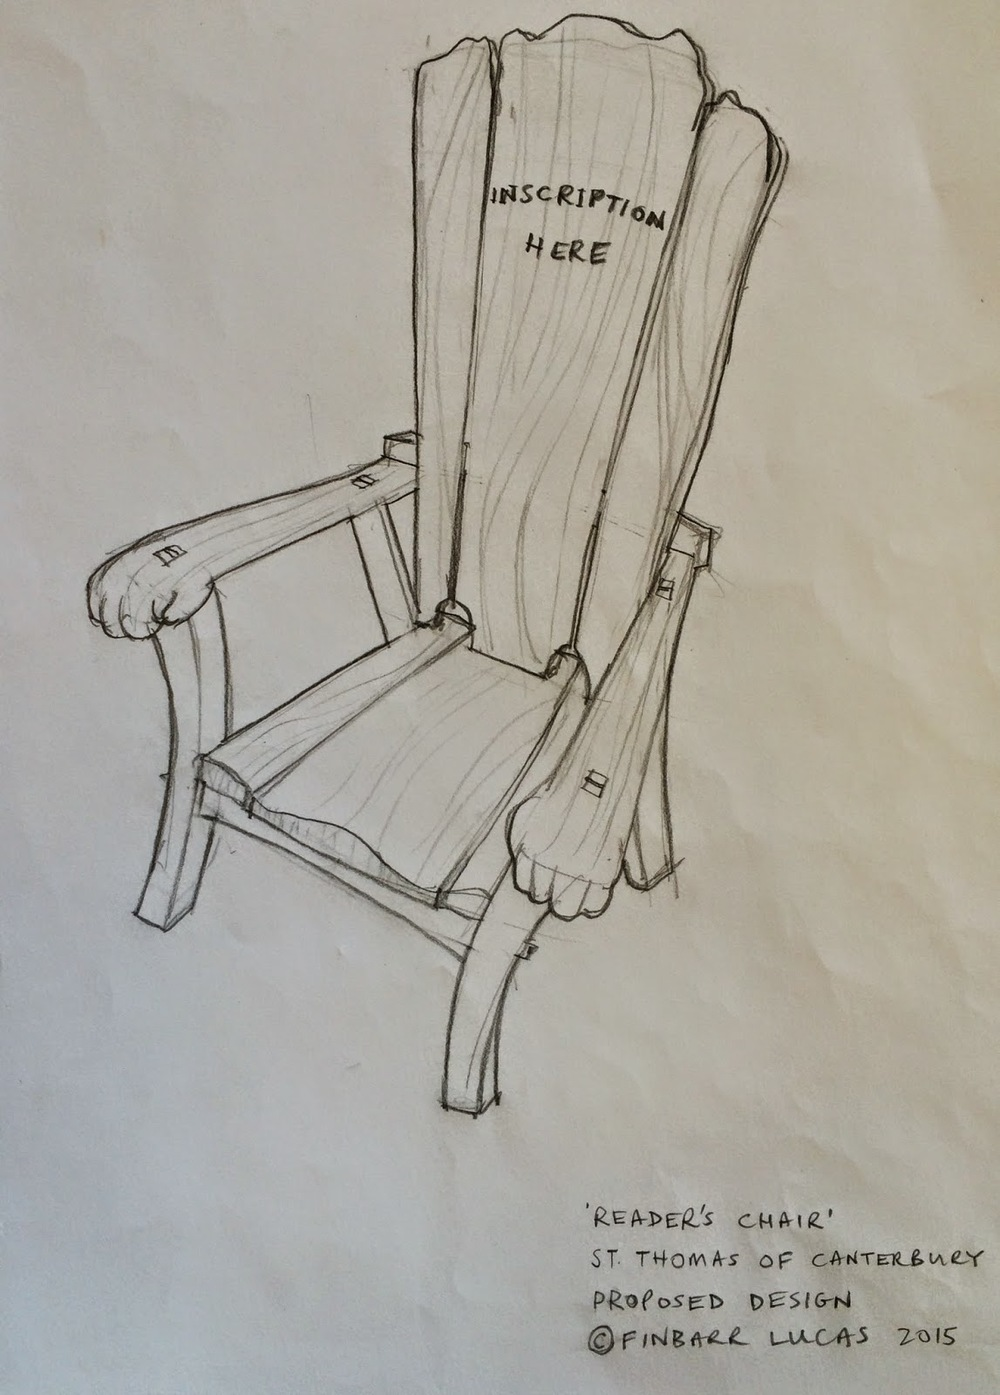 Reader's chair drawing.jpg